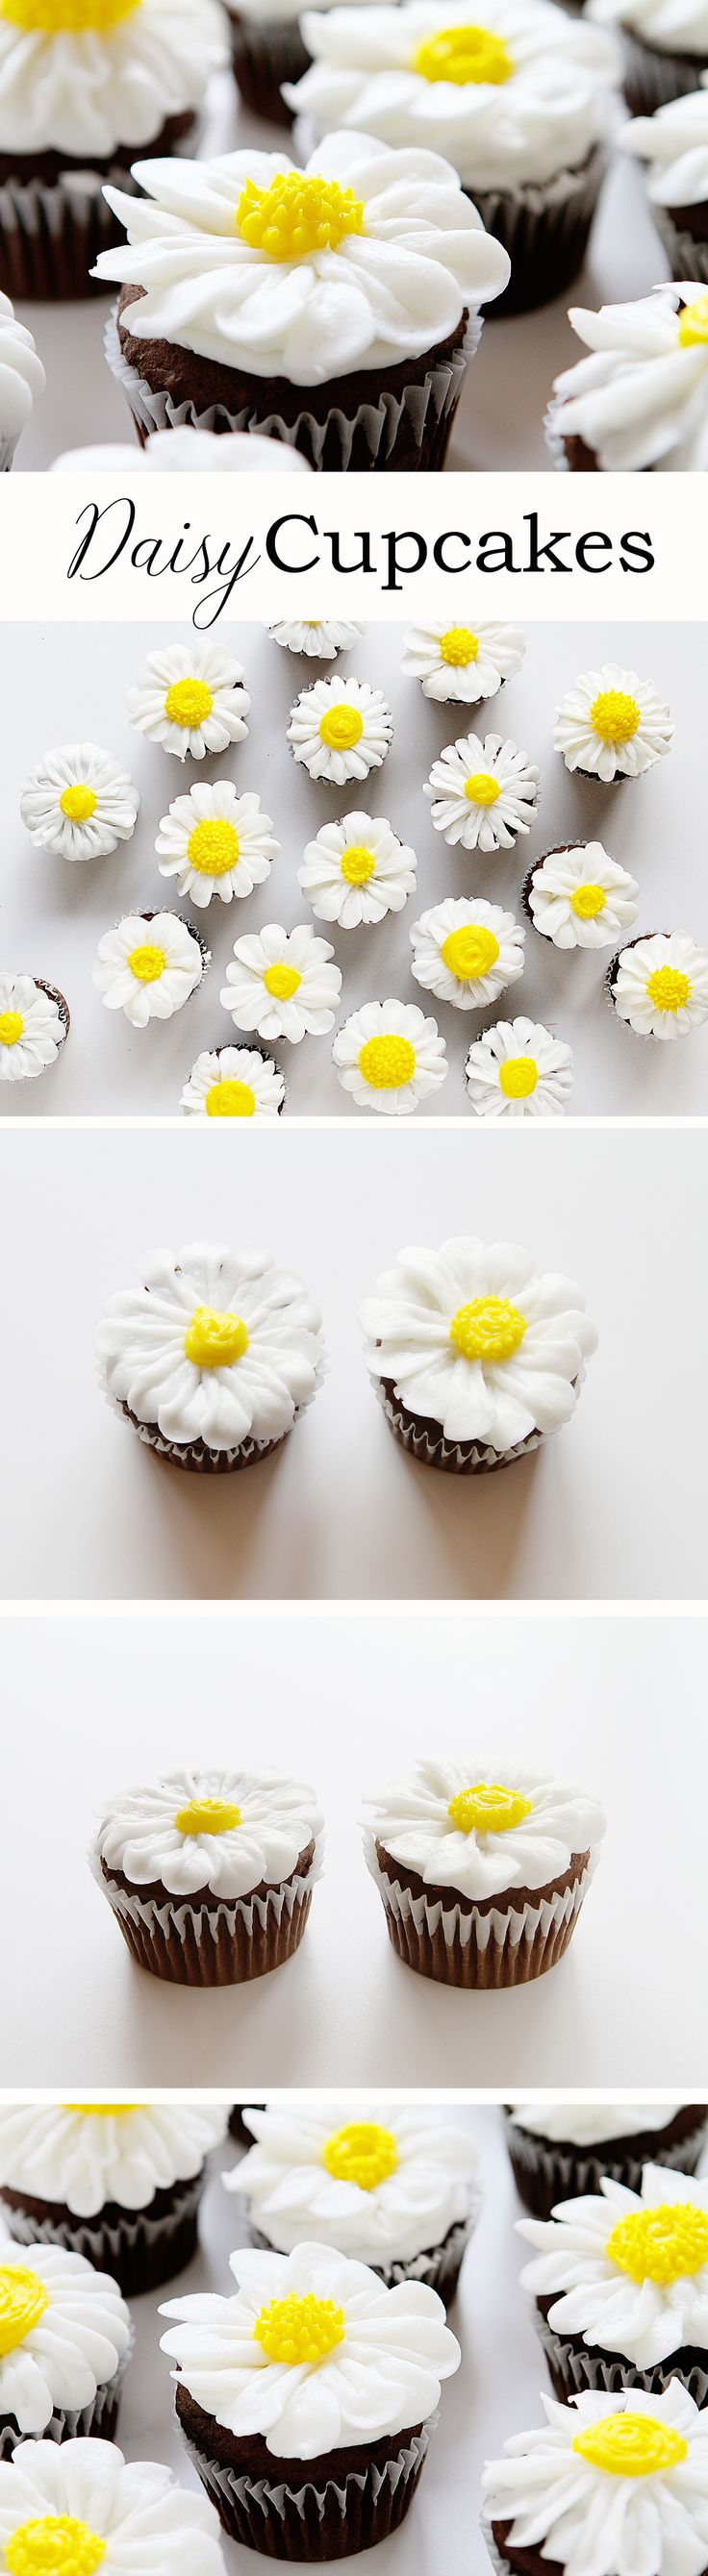 Daisy Cupcakes | Genius tips and tricks help to make this the EASIEST cupcake ever!